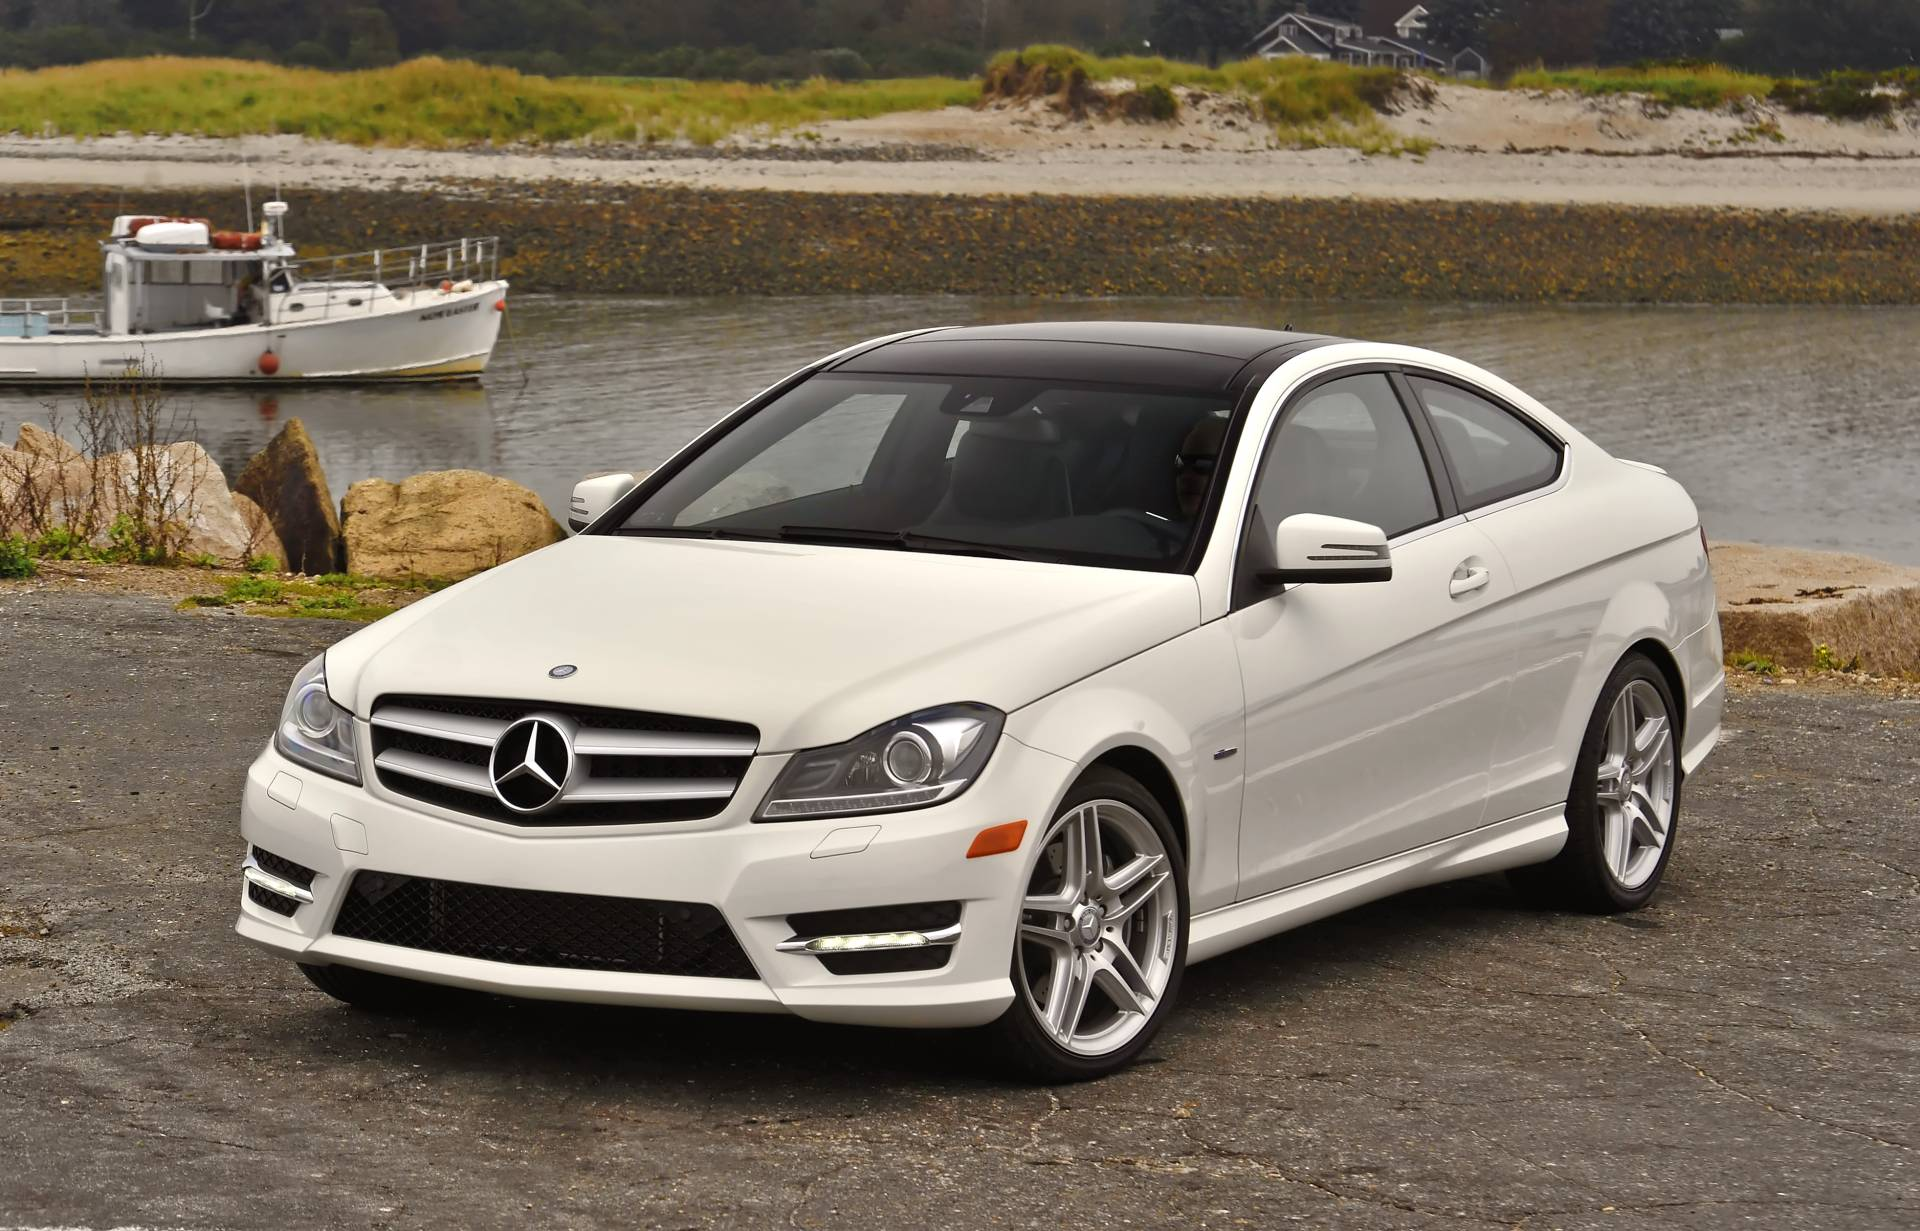 2013 mercedes c class amg images. Black Bedroom Furniture Sets. Home Design Ideas